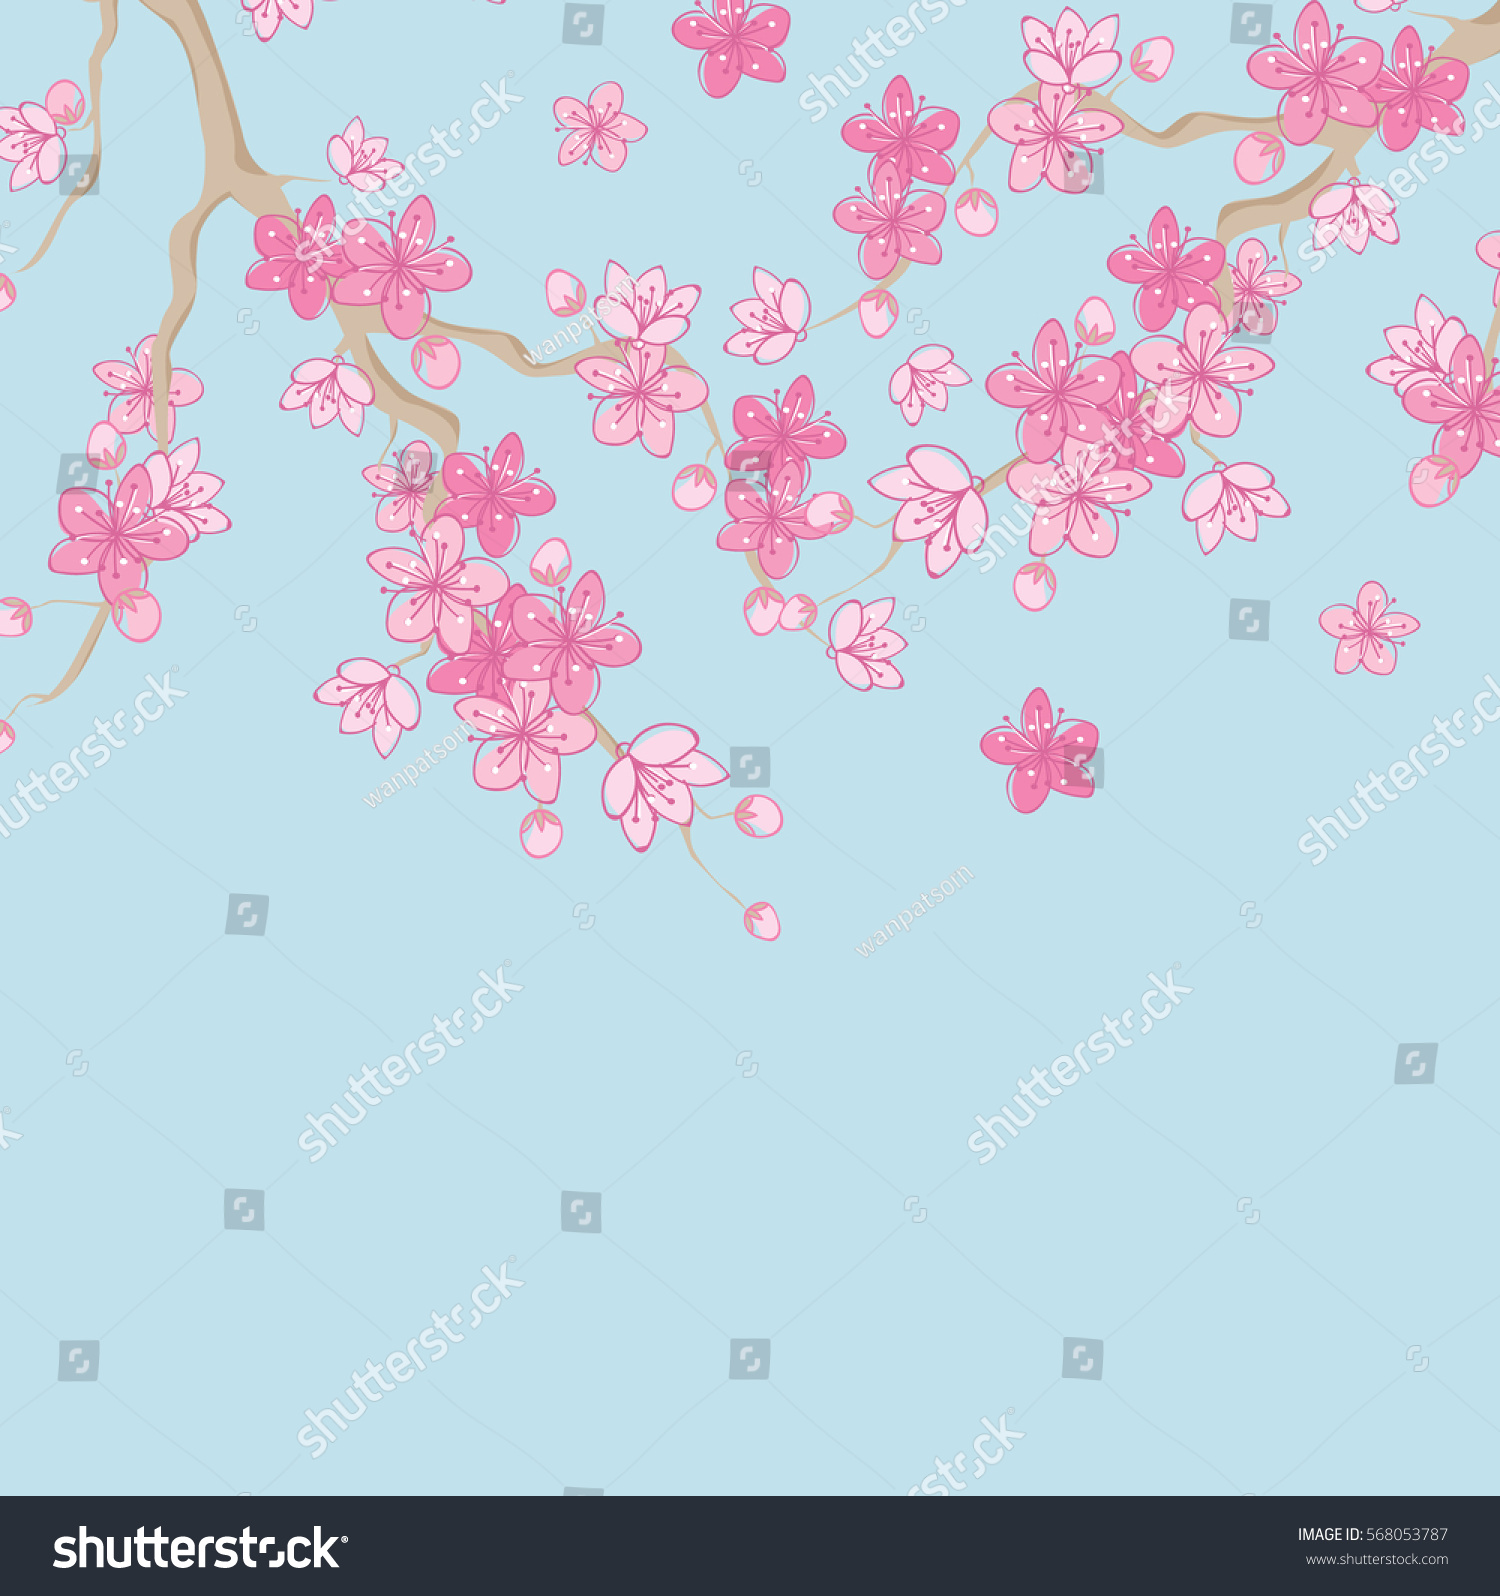 Pink Beautiful Sakura Or Cherry Blossom Branch With Flowers Drawn In